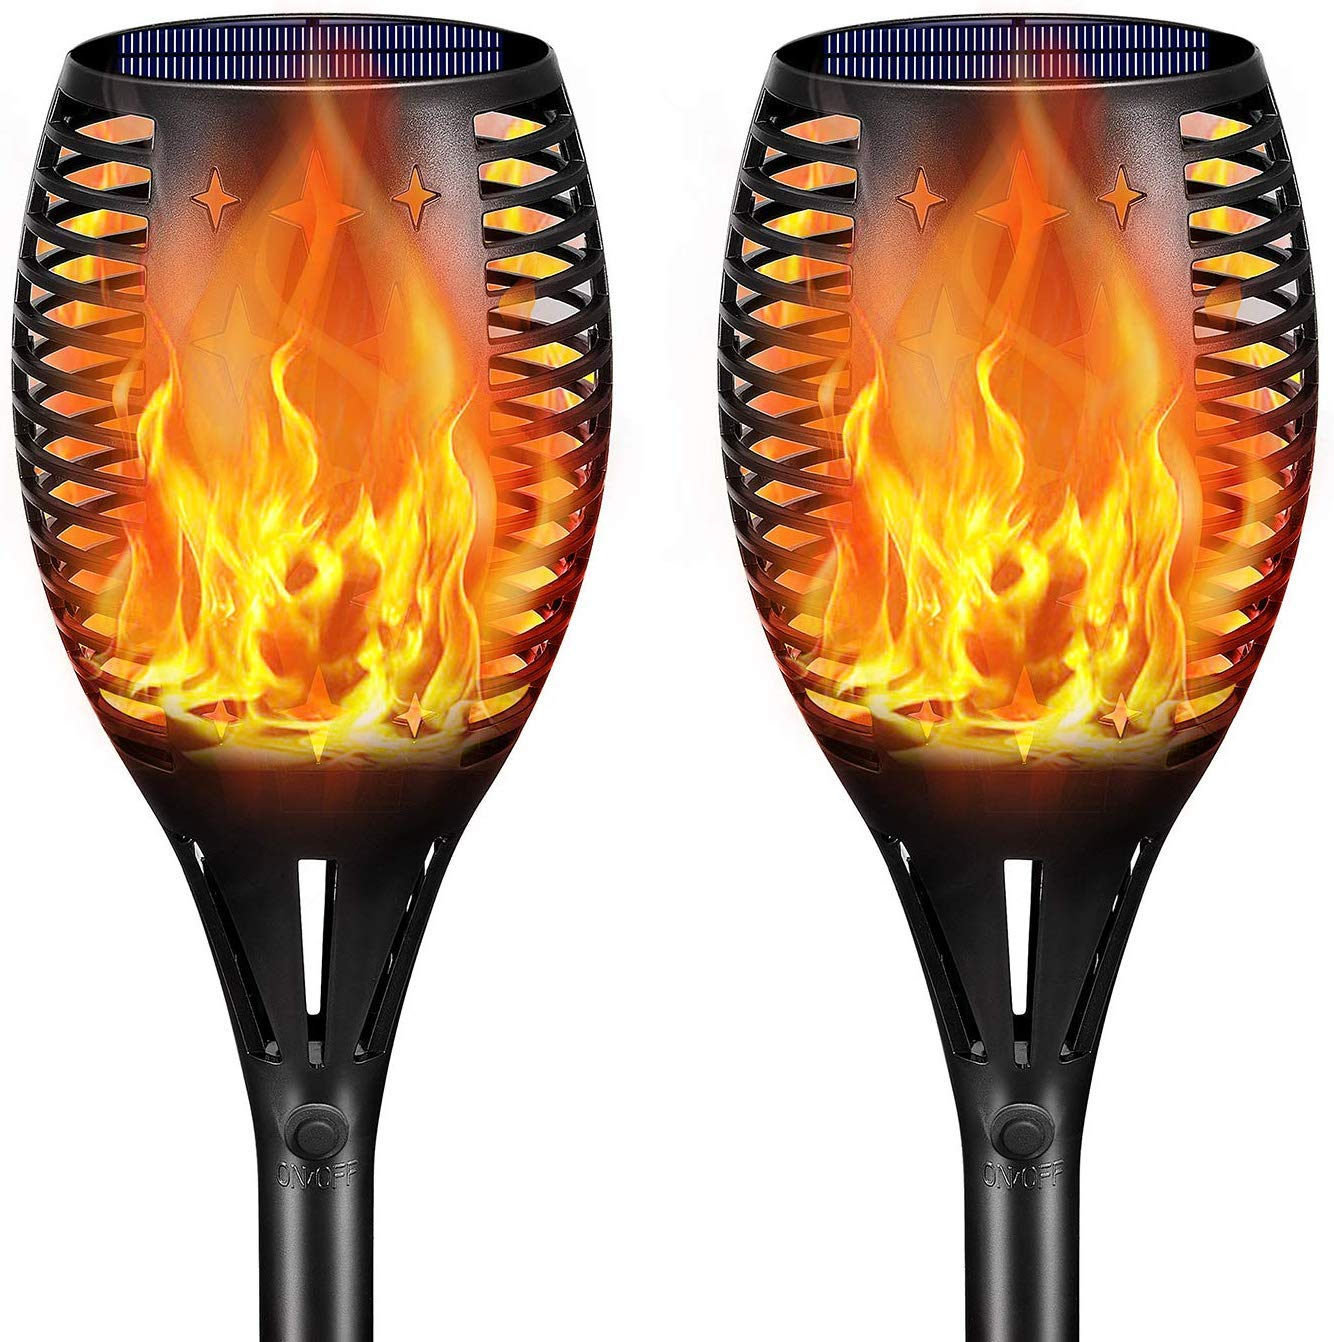 DeLight Solar Torch Lights, Waterproof Tiki Torches, Ourdoor Landscape Lighting 96 LED Dusk To Dawn Auto On/Off Security Torch Light (2 Pack) by DELight